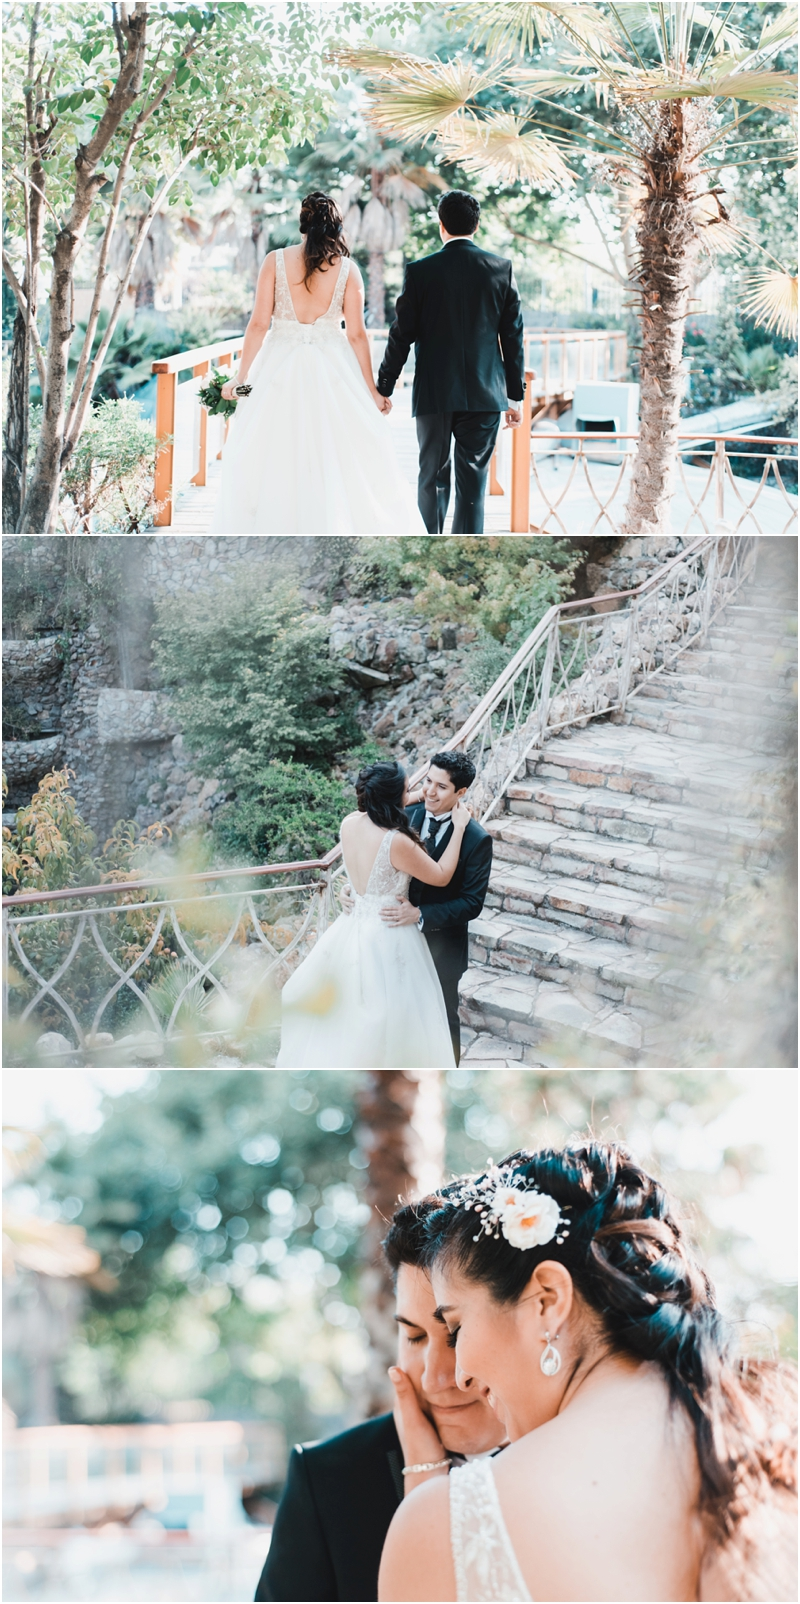 Fotografías de Matrimonio, Ampersand Wedding Films